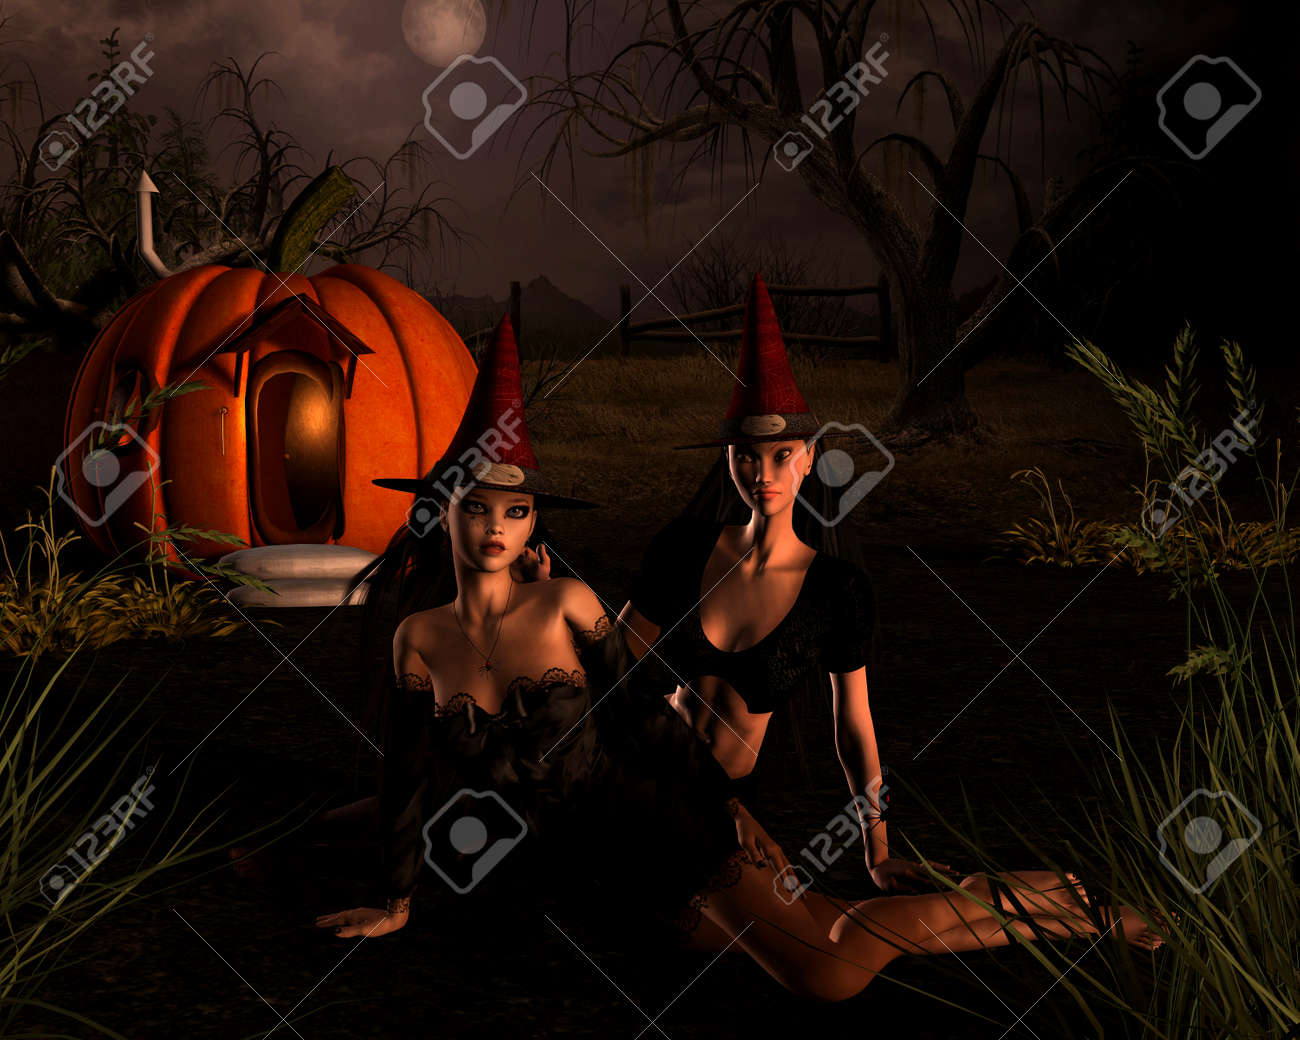 fantasy illustration of two halloween witches sitting outside their pumpkin house on a dark night